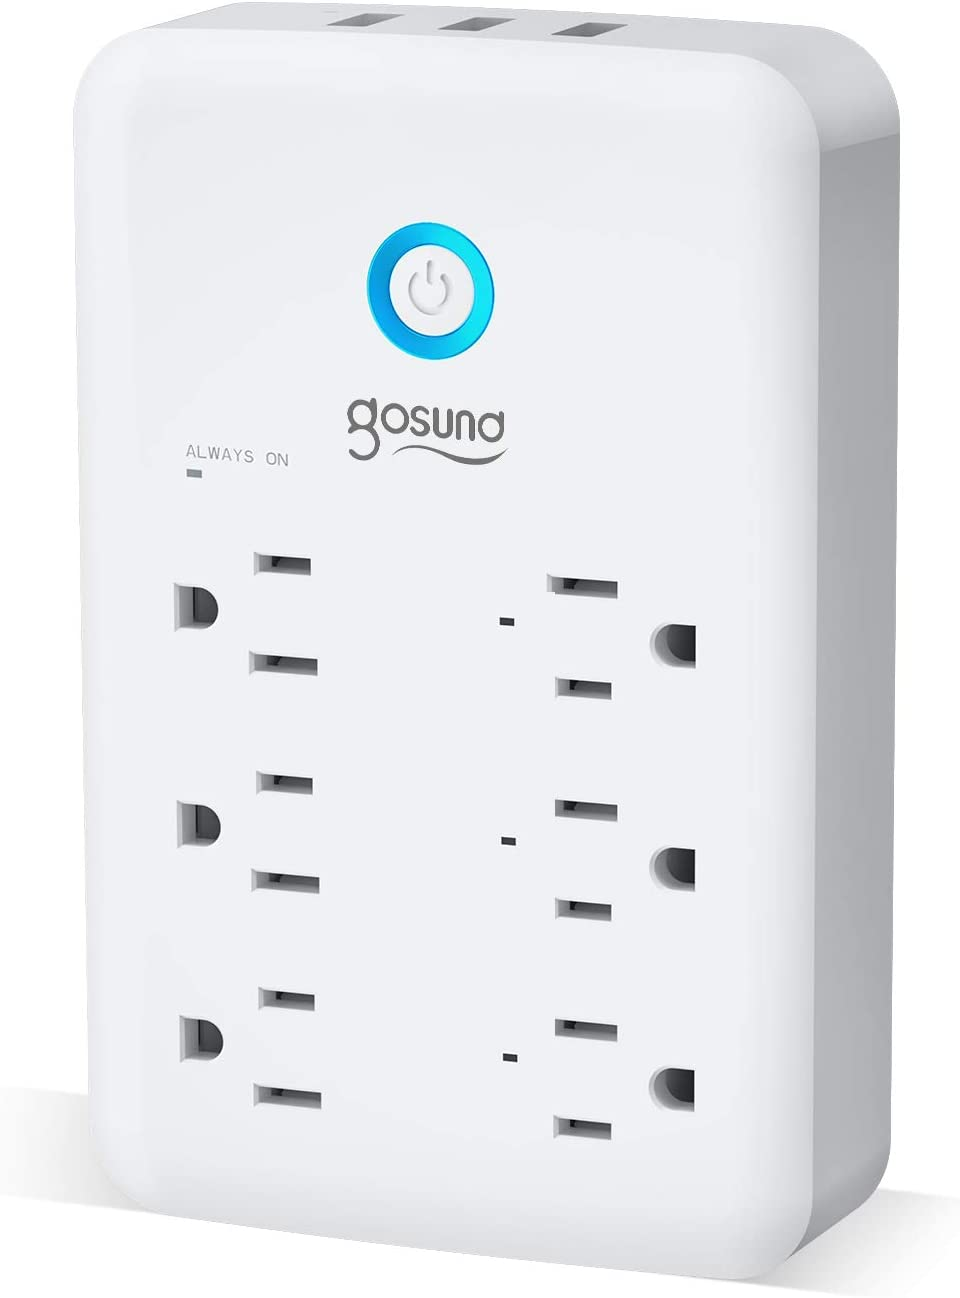 Smart Plug Outlet Extender, Gosund Surge Protector Power Strip Work with Alexa, Google Home, Wall Multi WiFi Outlet with 3 USB Ports, 6 Outlet Wall Adapter Plug Extender for APP Control,15A/1800W